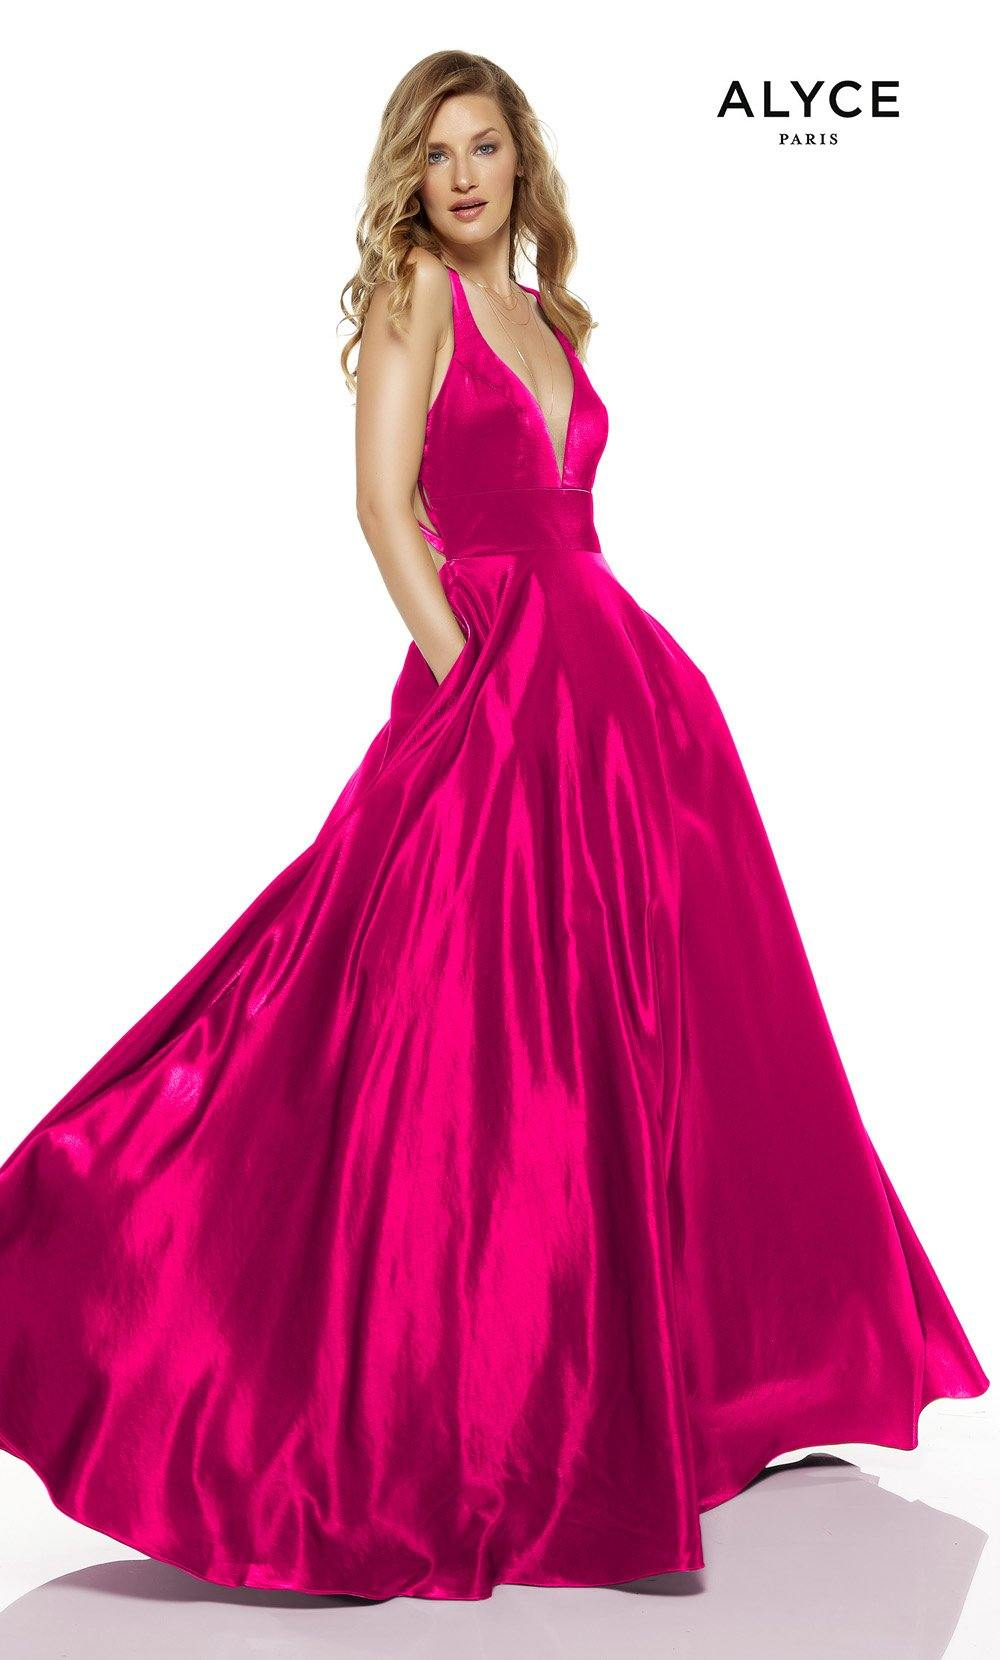 Hot Pink red-carpet gown with pockets and a plunging neckline